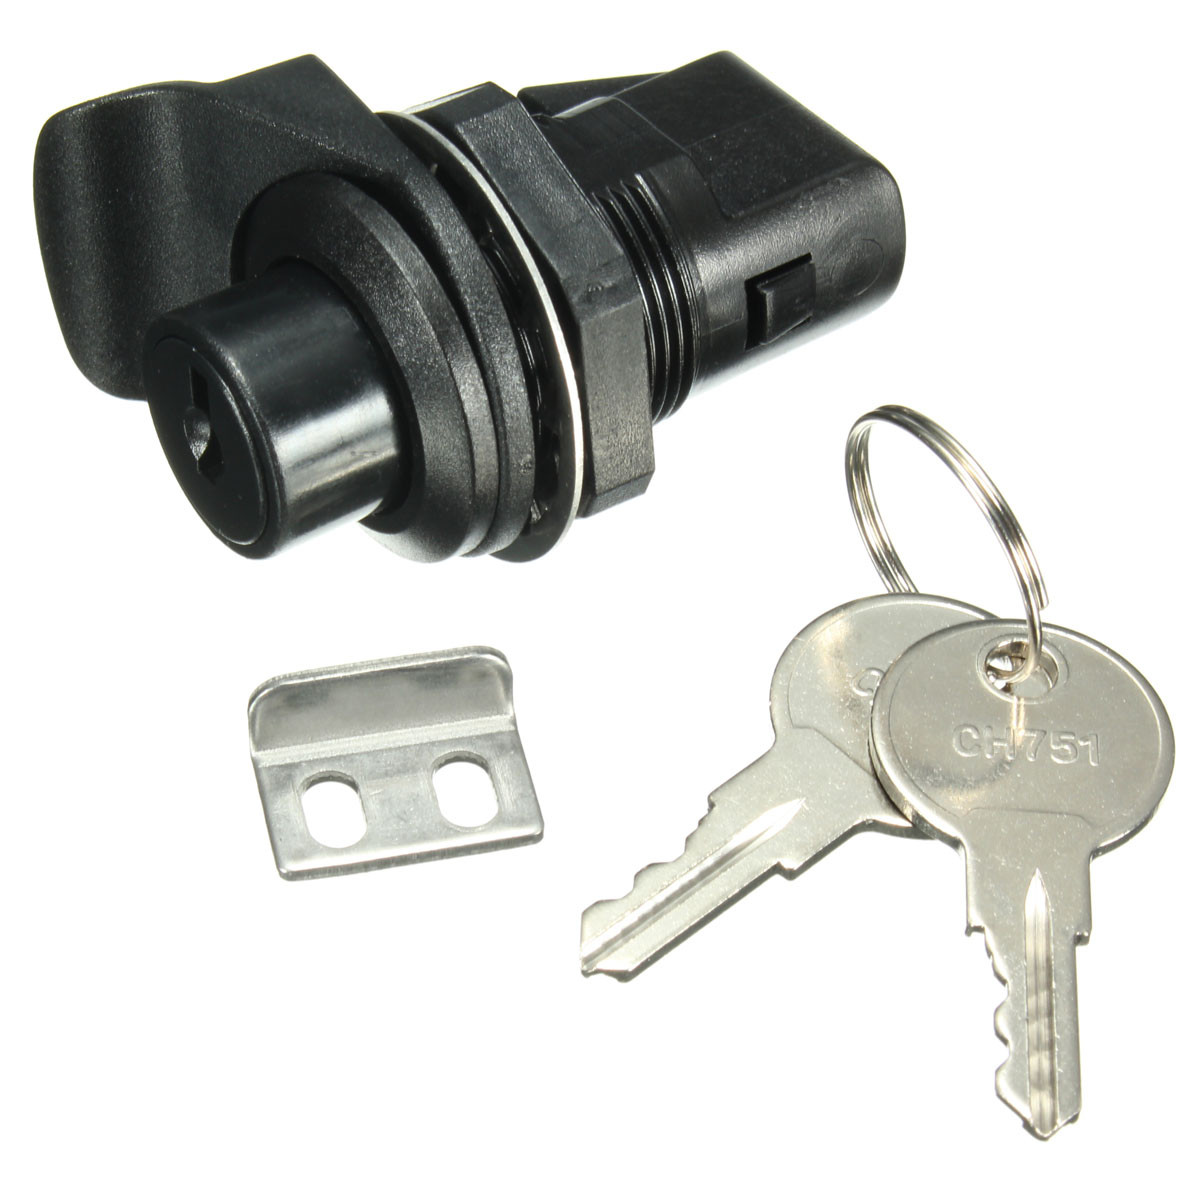 Push Button Latch With Key For Motorcycle Boat Door Gloveboxes Lock Alexnld Com